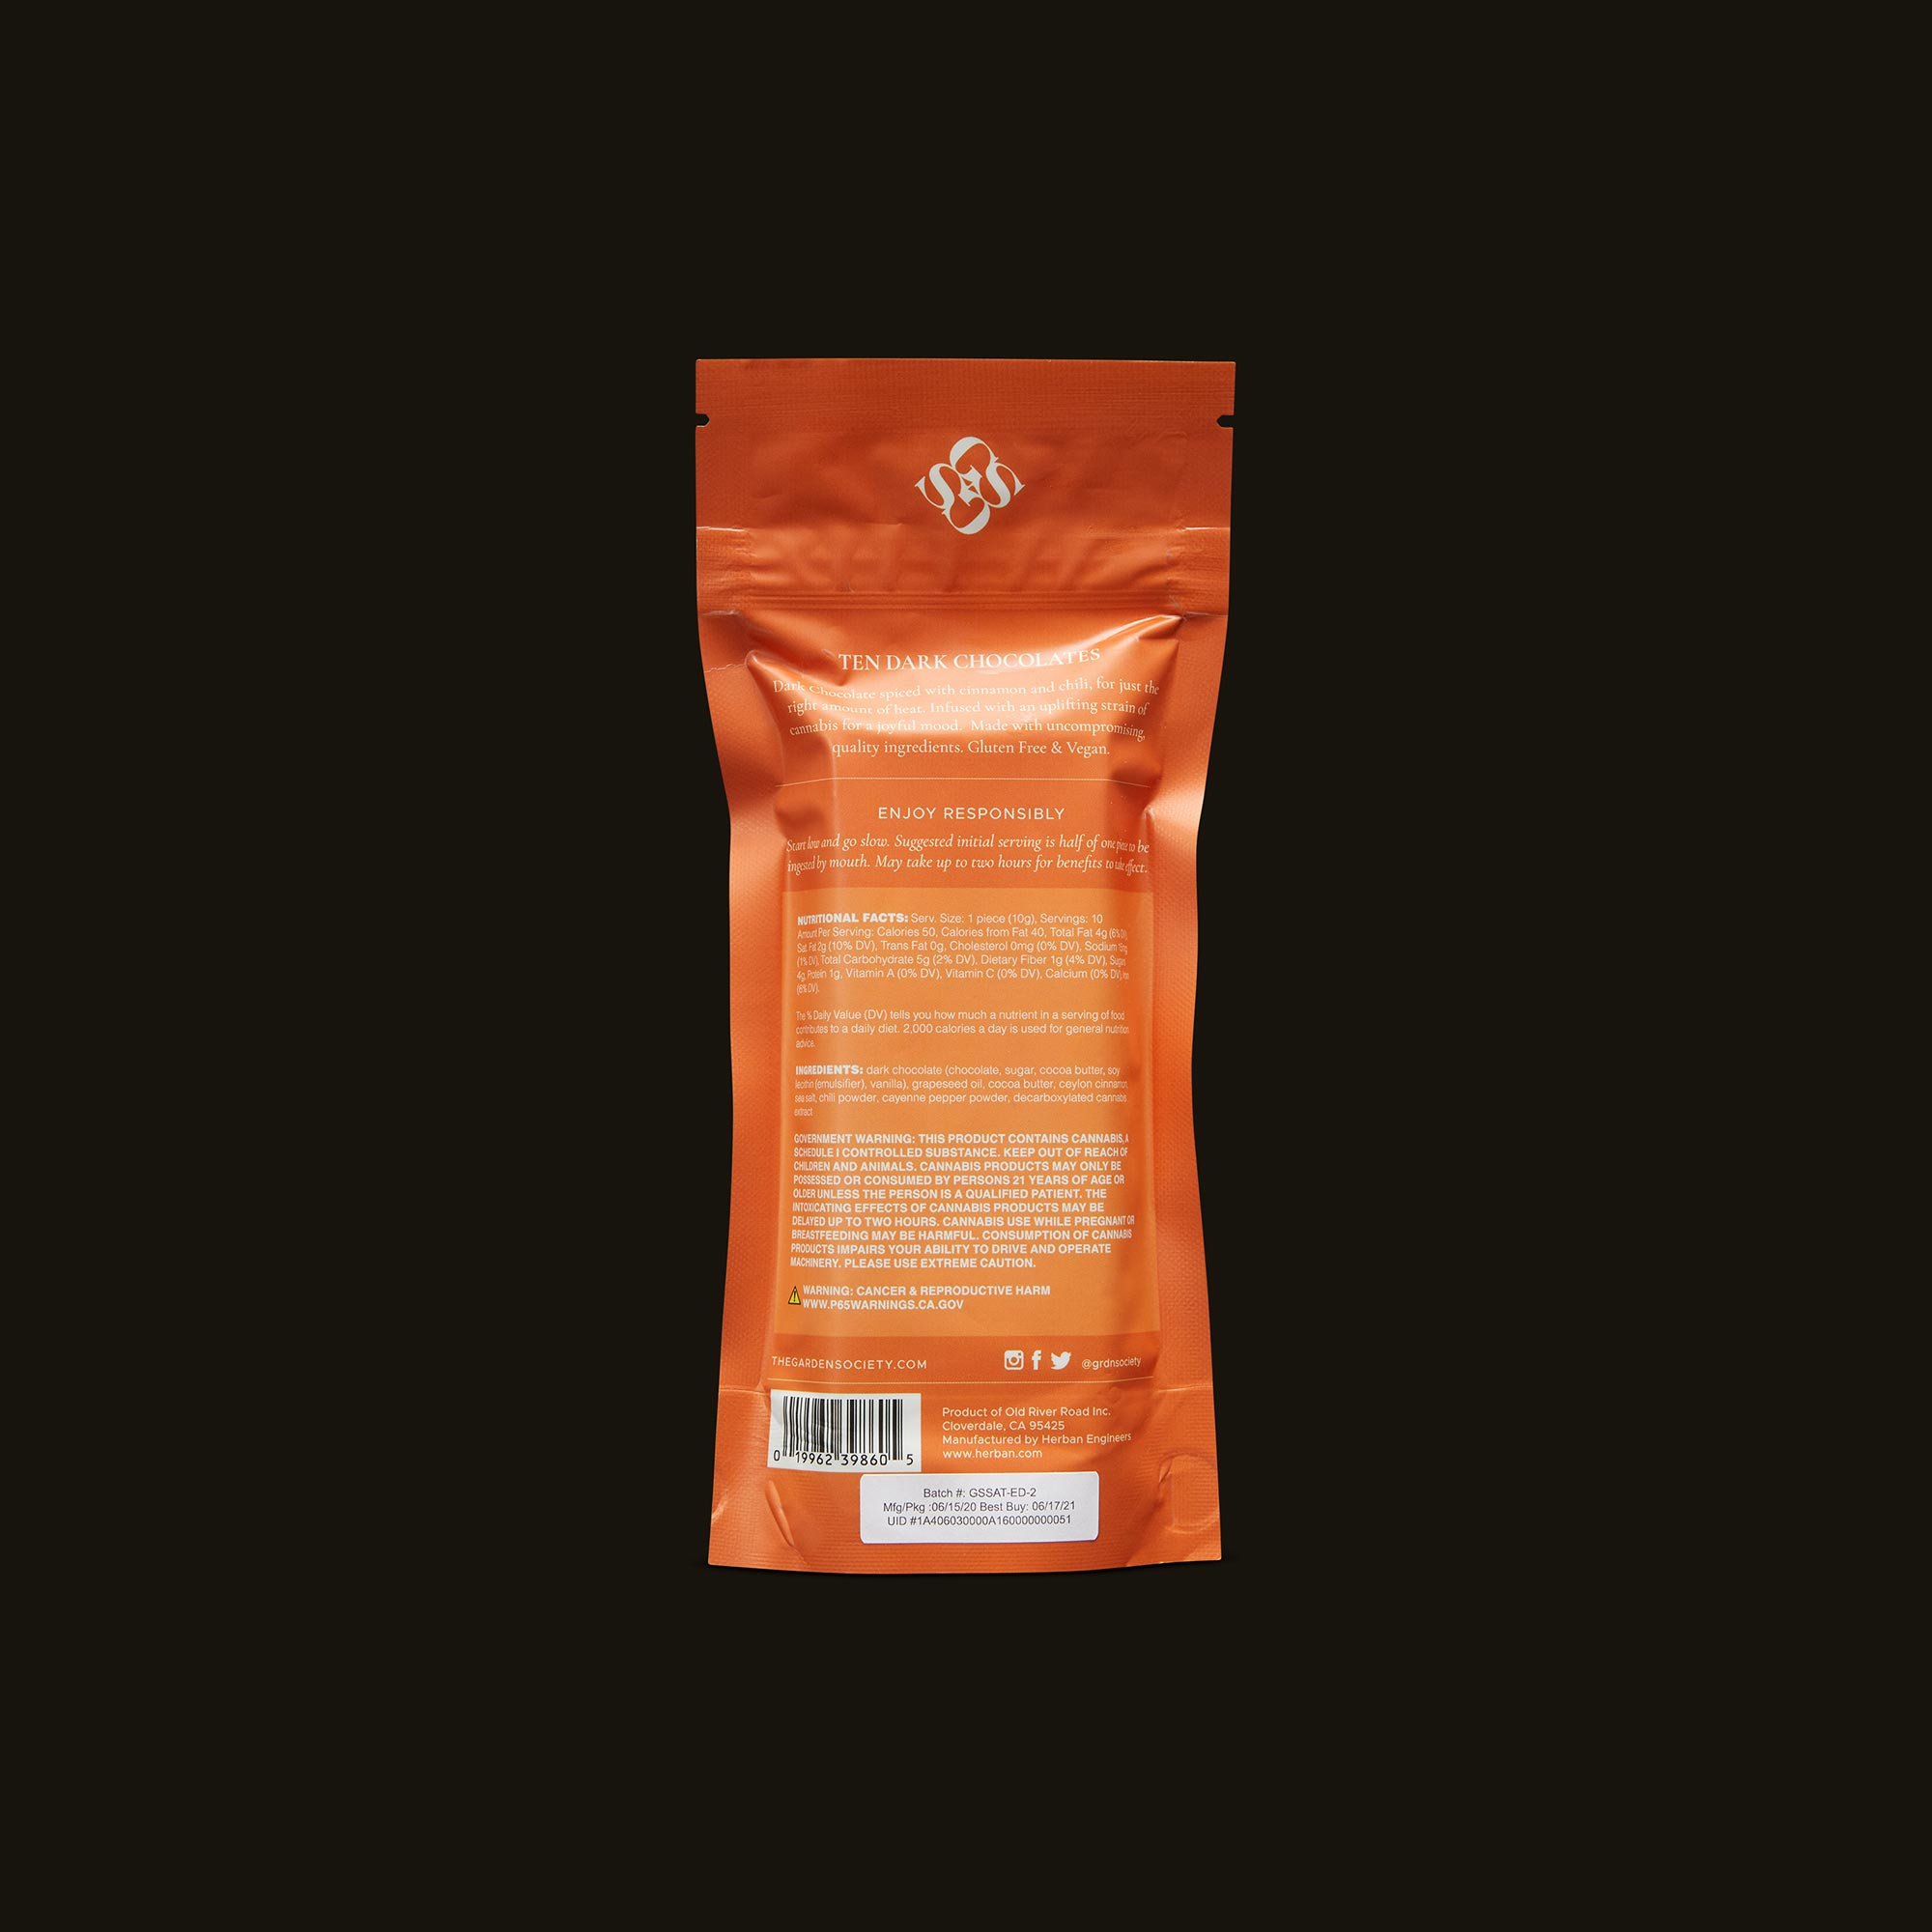 Garden Society Spiced Dark Chocolate with Chili Back Packaging